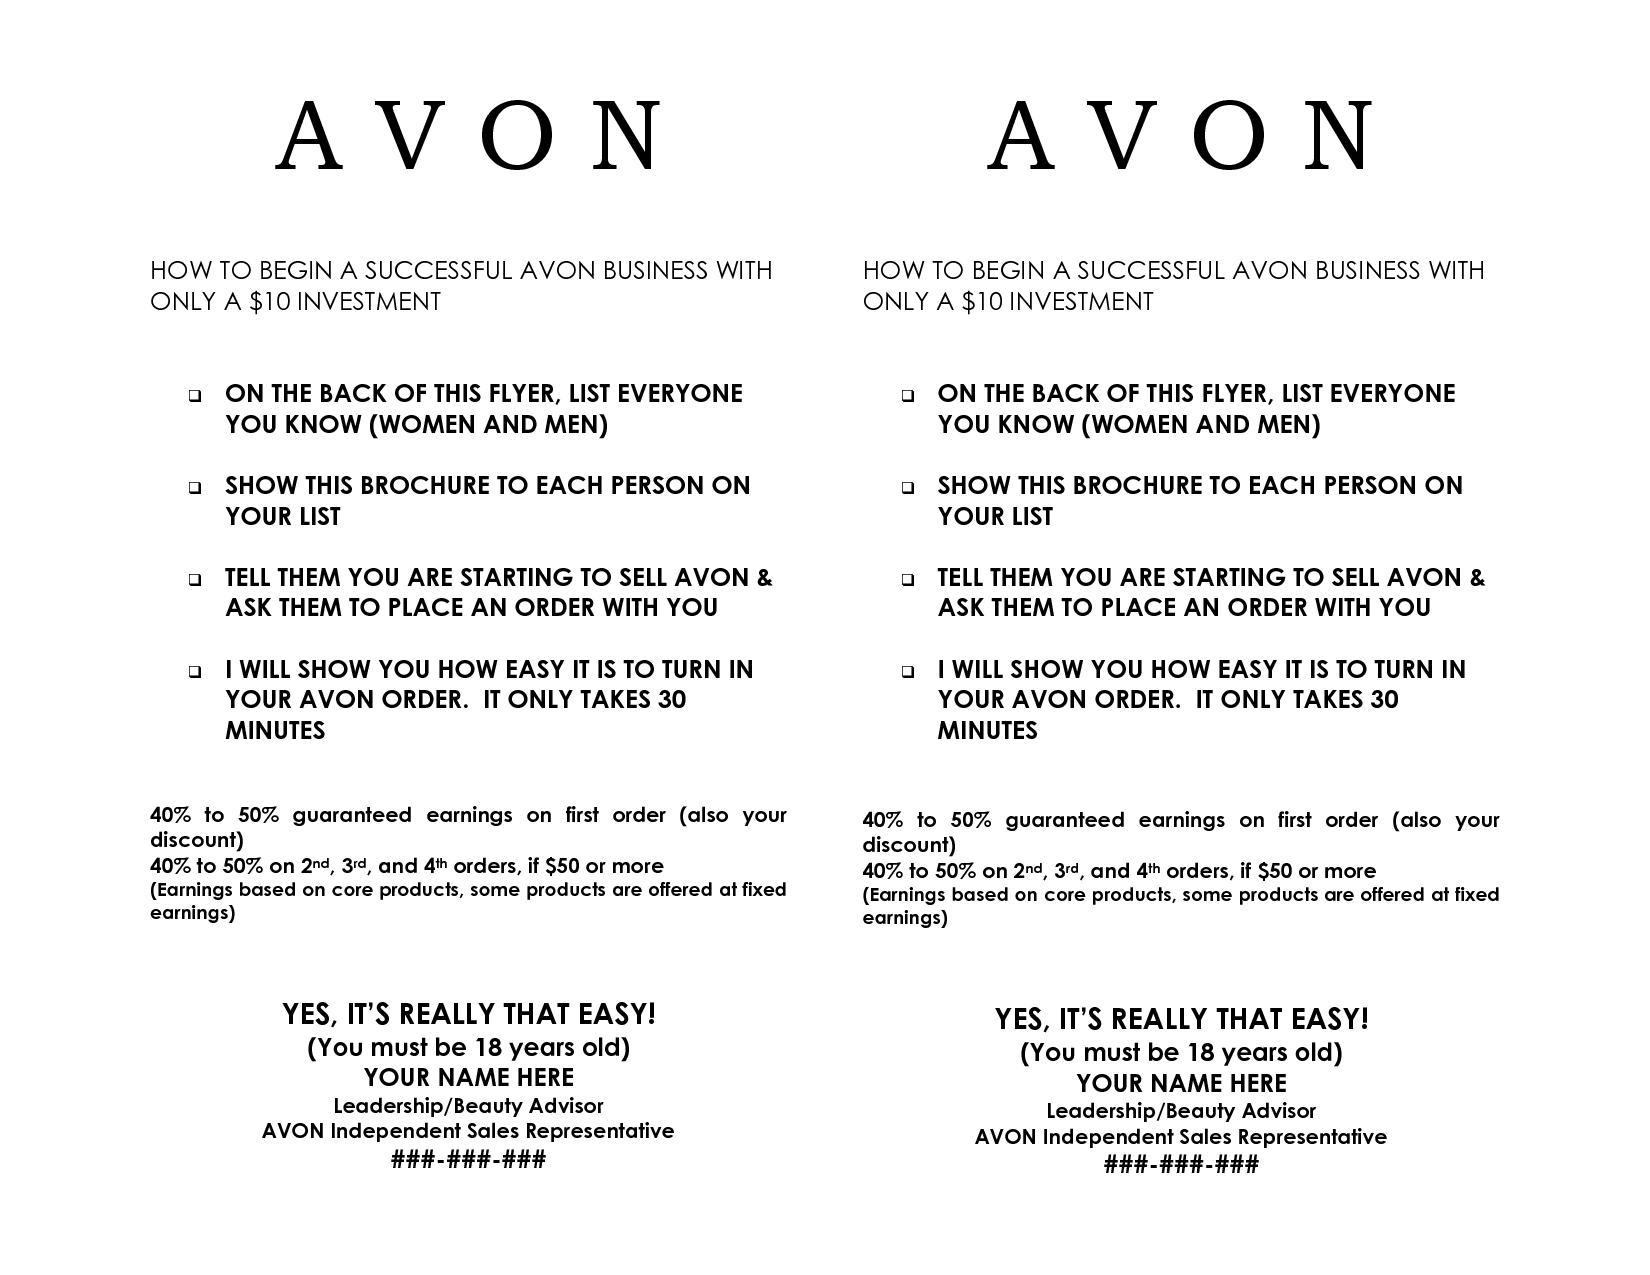 Avon Flyers | Avon Business | Avon | Pinterest | Avon, Avon - Free Printable Avon Flyers